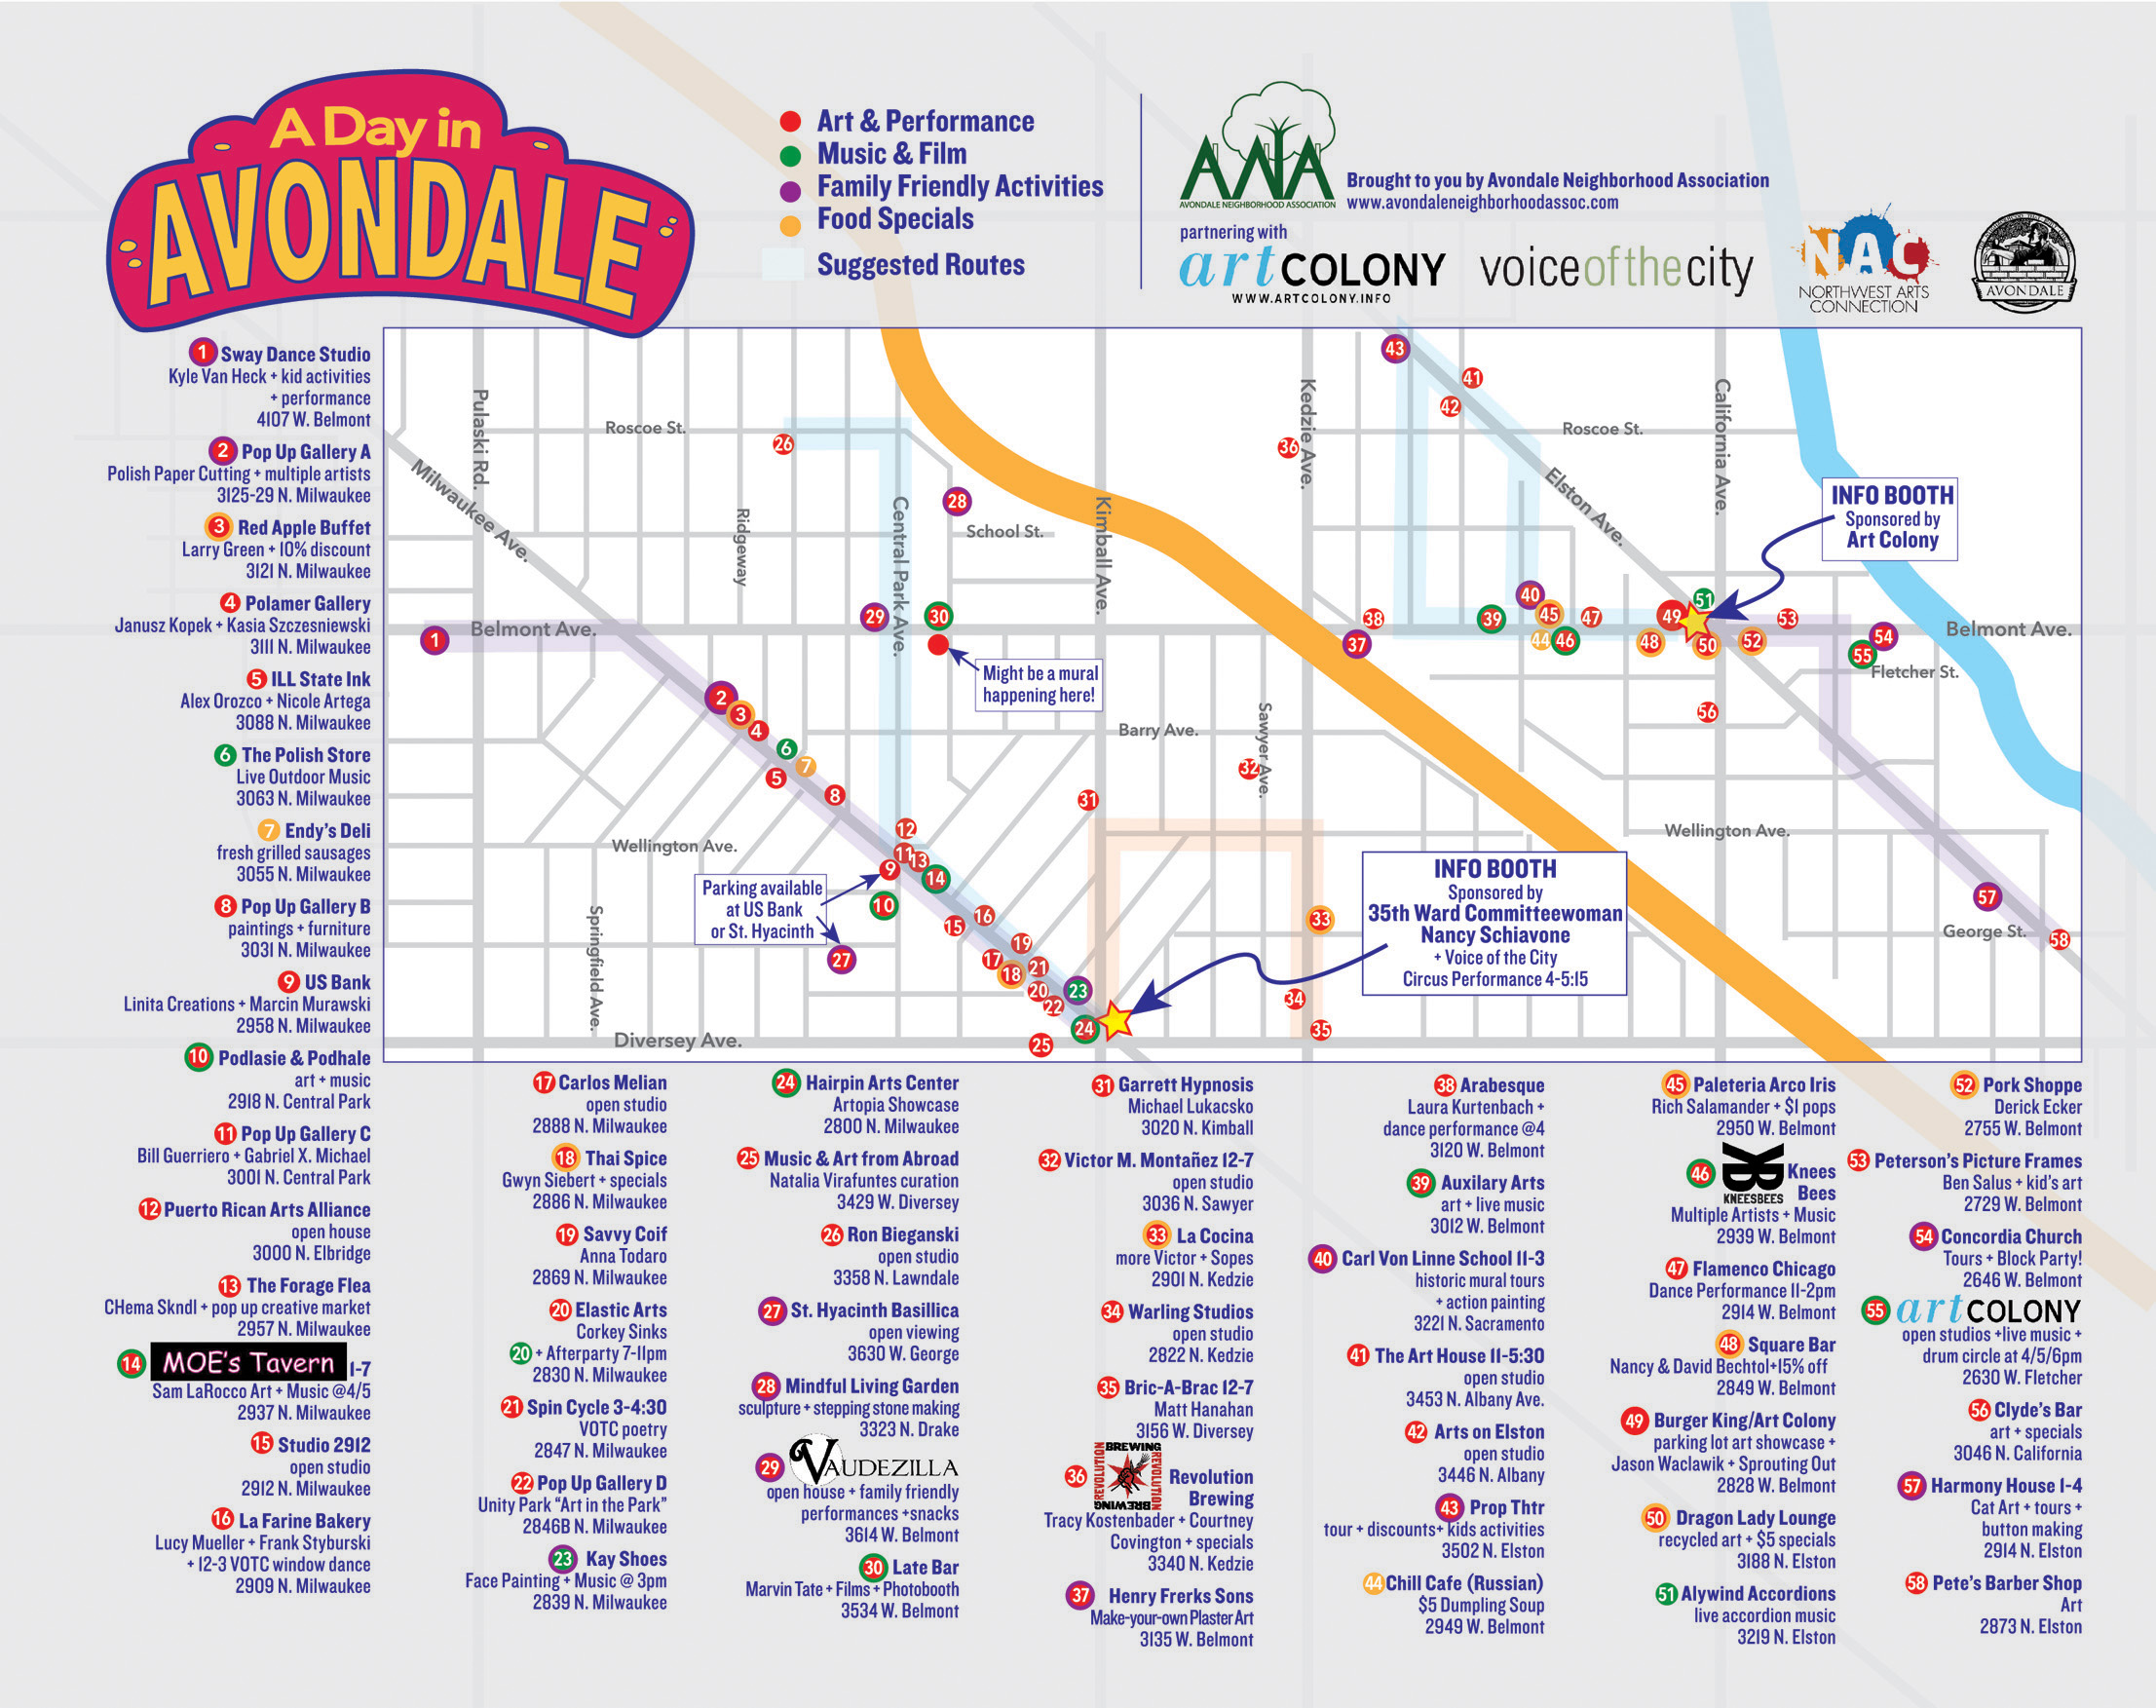 A Day in Avondale | An arts walk of neighborhood oddities